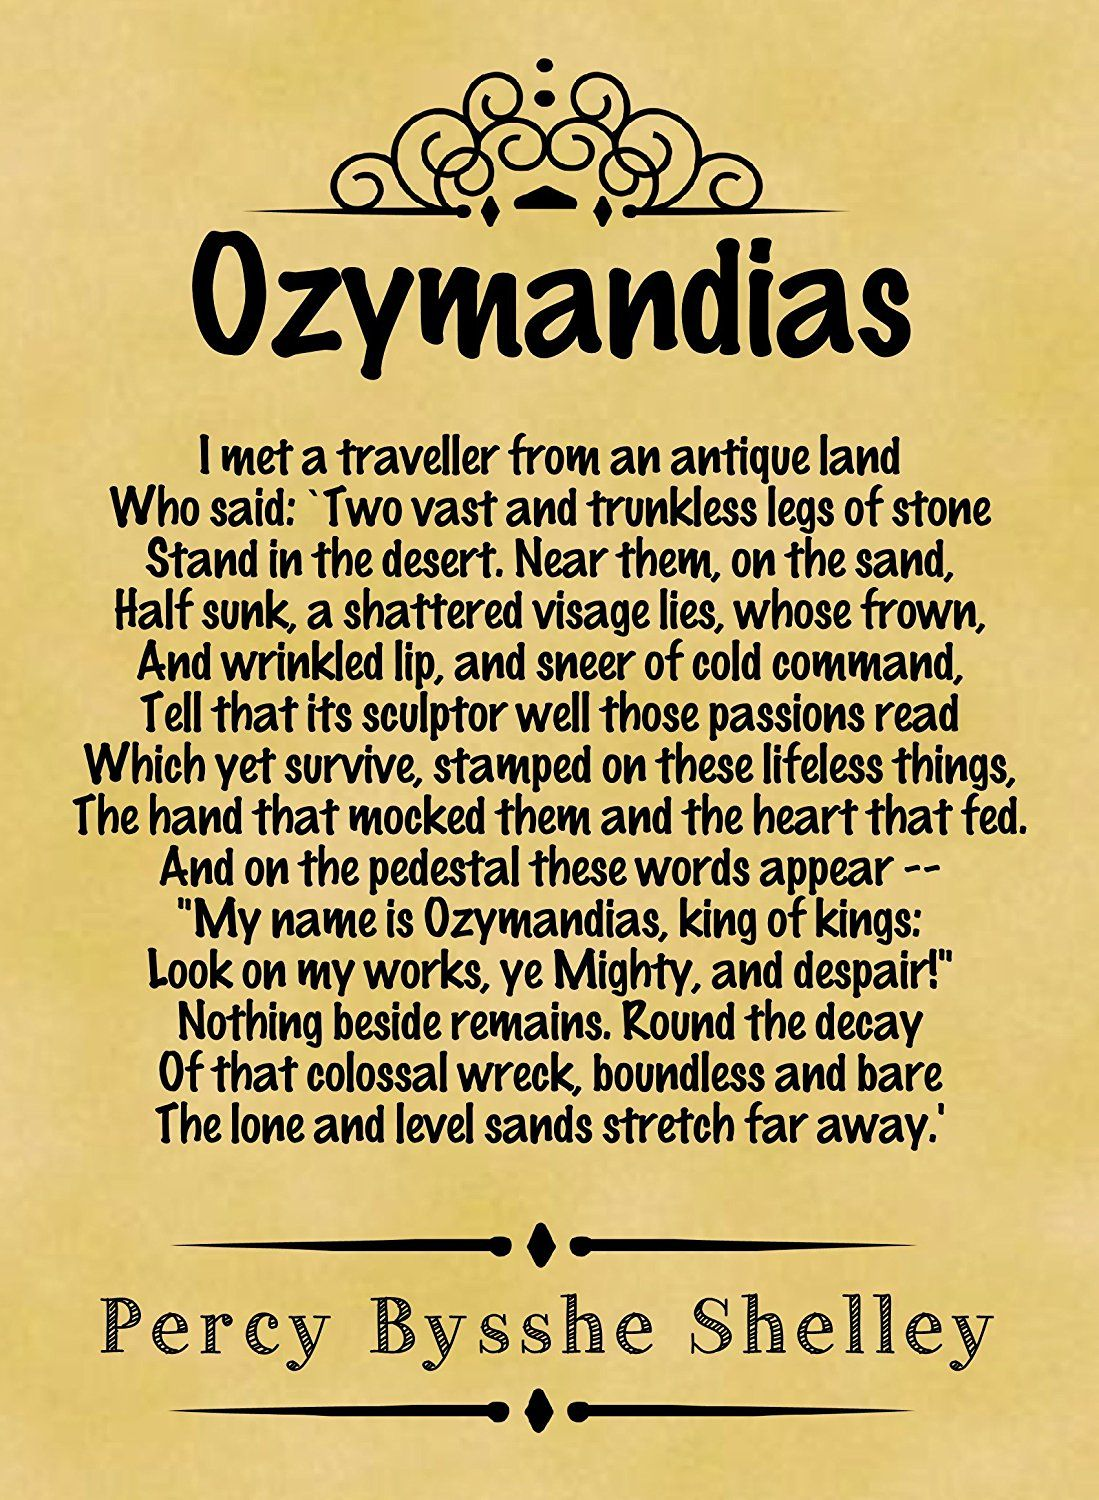 Percy bysshe shelley quotes quotesgram - Amazon Com A4 Size Parchment Poster Classic Poem Percy Bysshe Shelley Ozymandias Prints